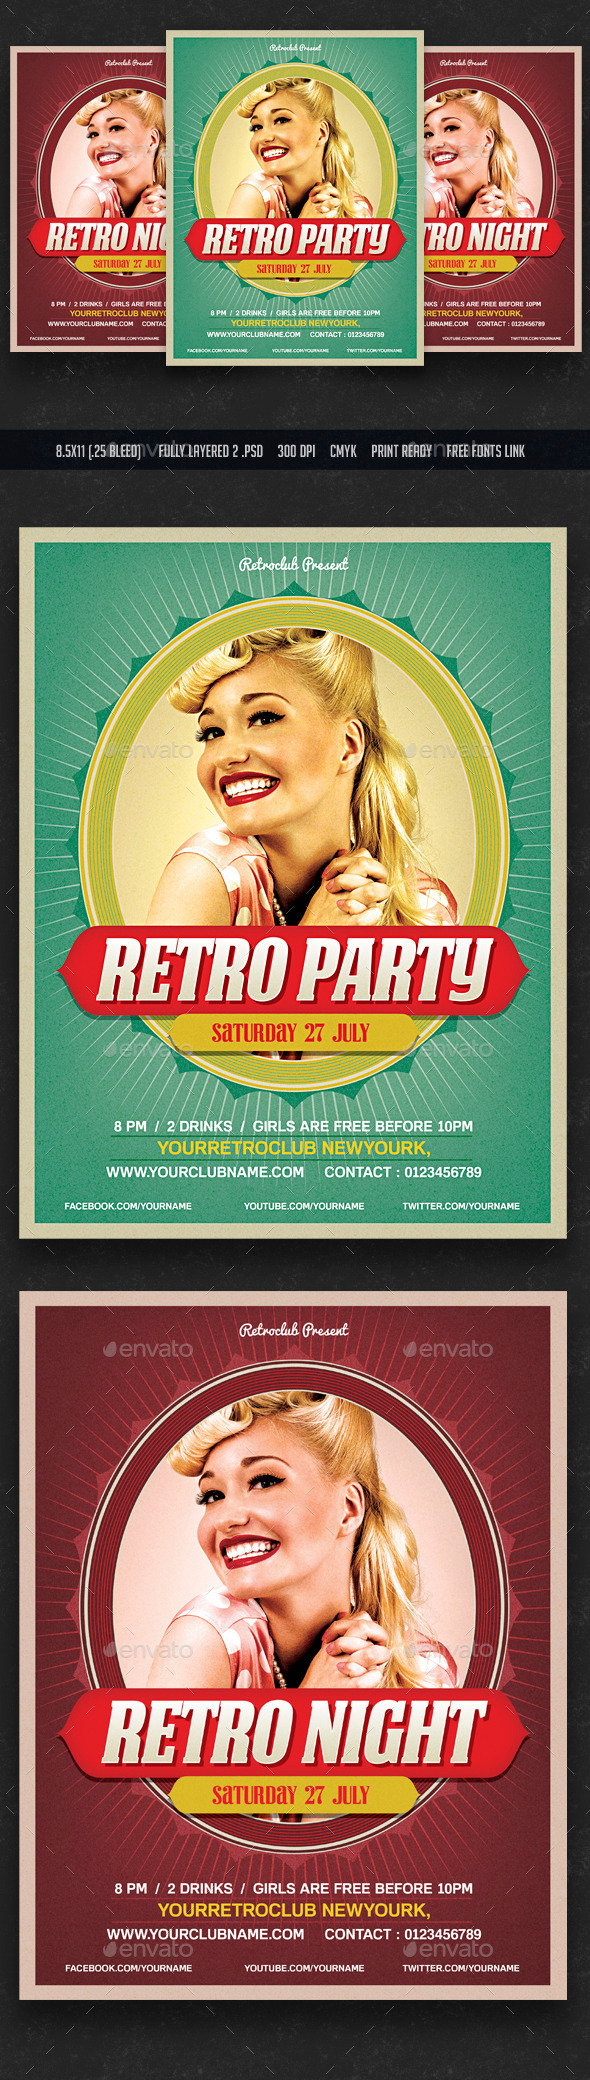 GraphicRiver Retro Party Flyer 11774439